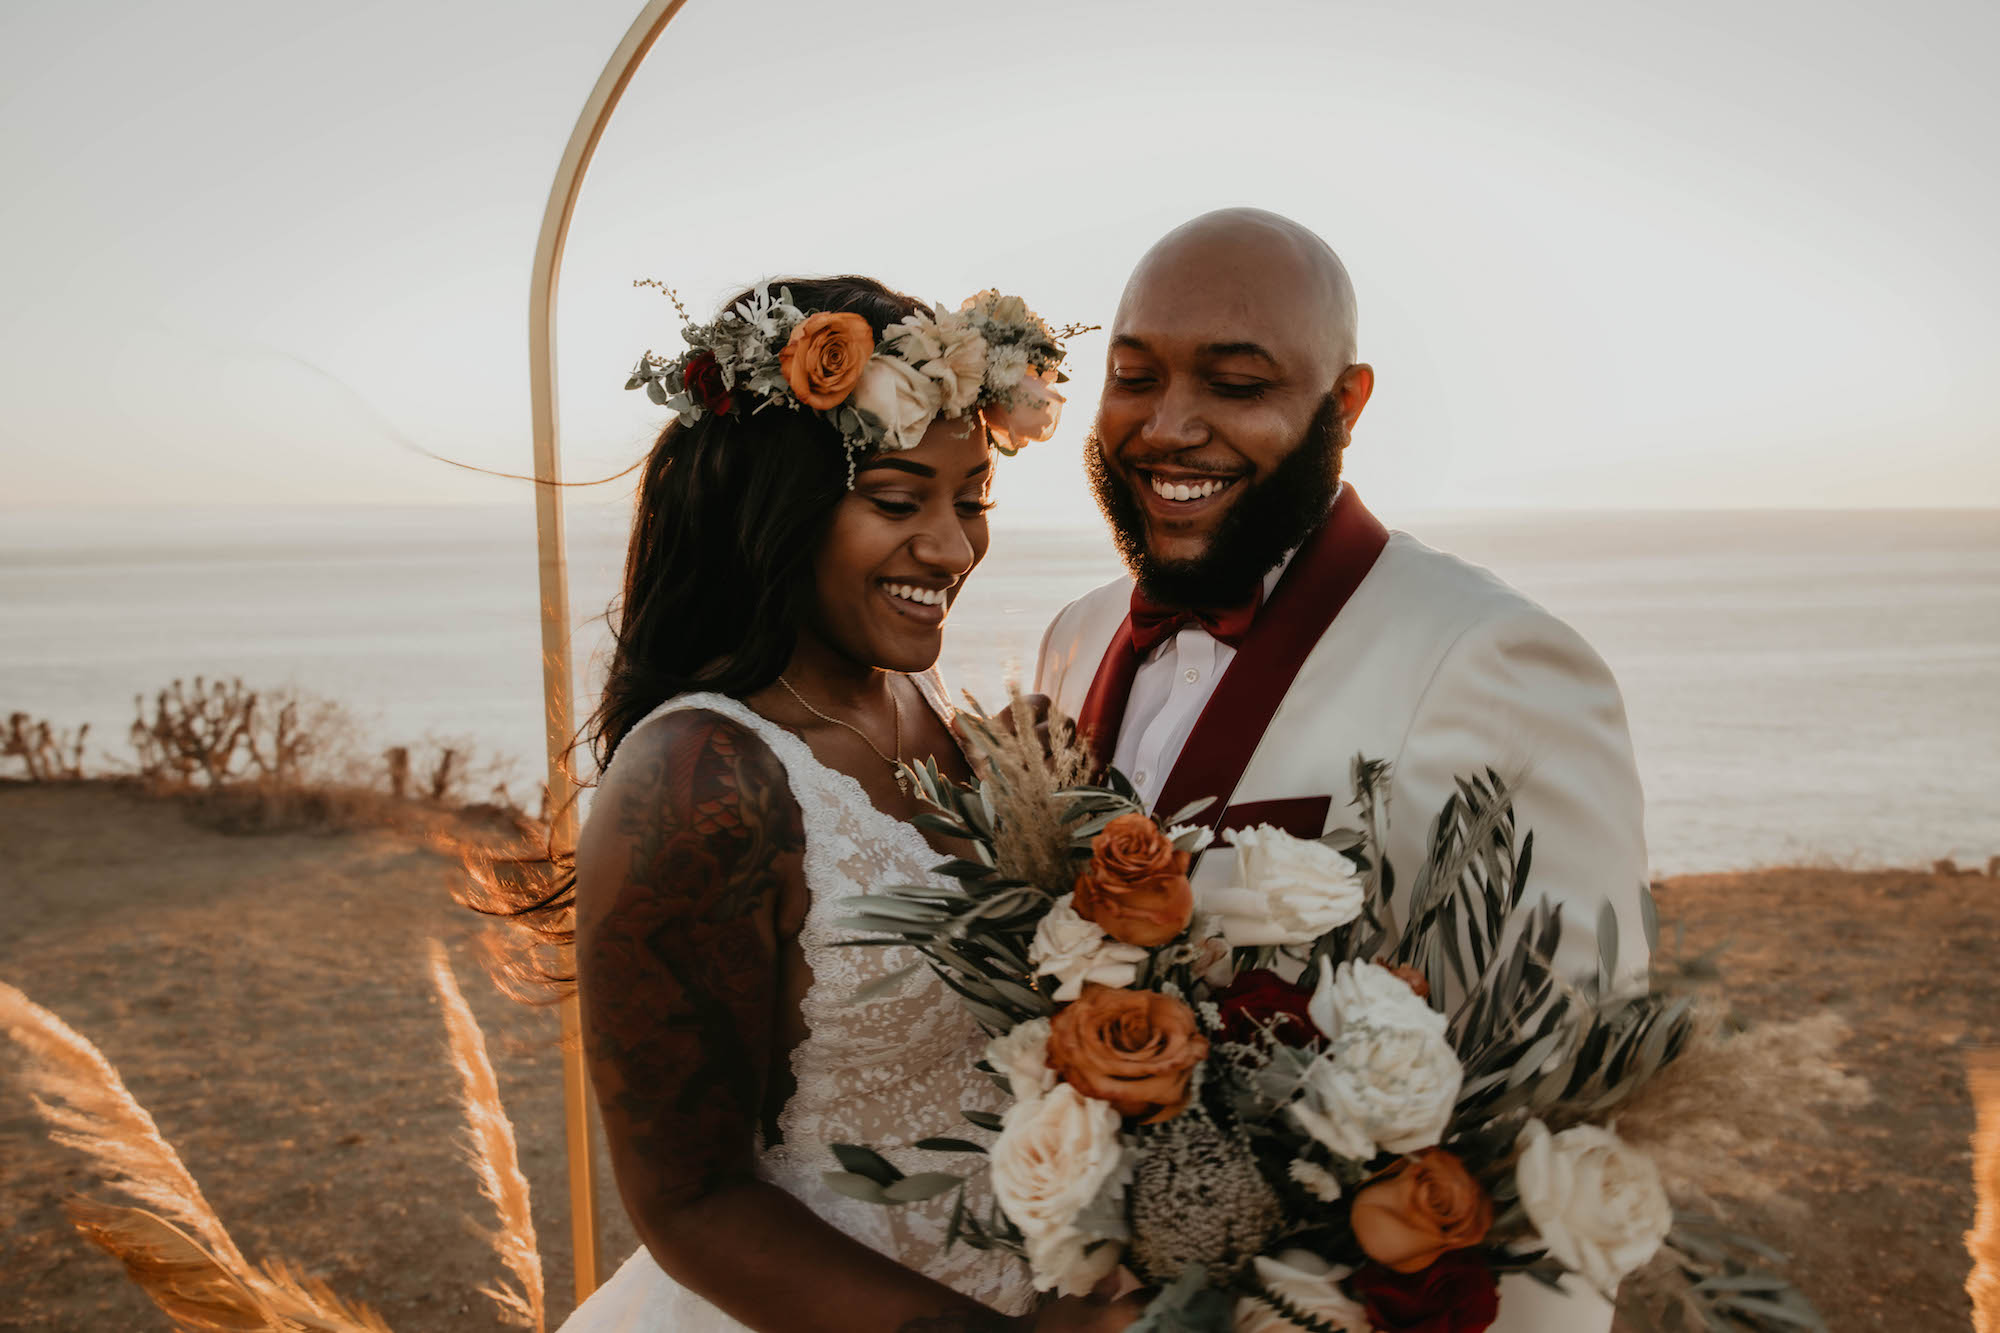 Boho Malibu Elopement florals and elopement planner meadows events. photos 5 by amanda meisters photography